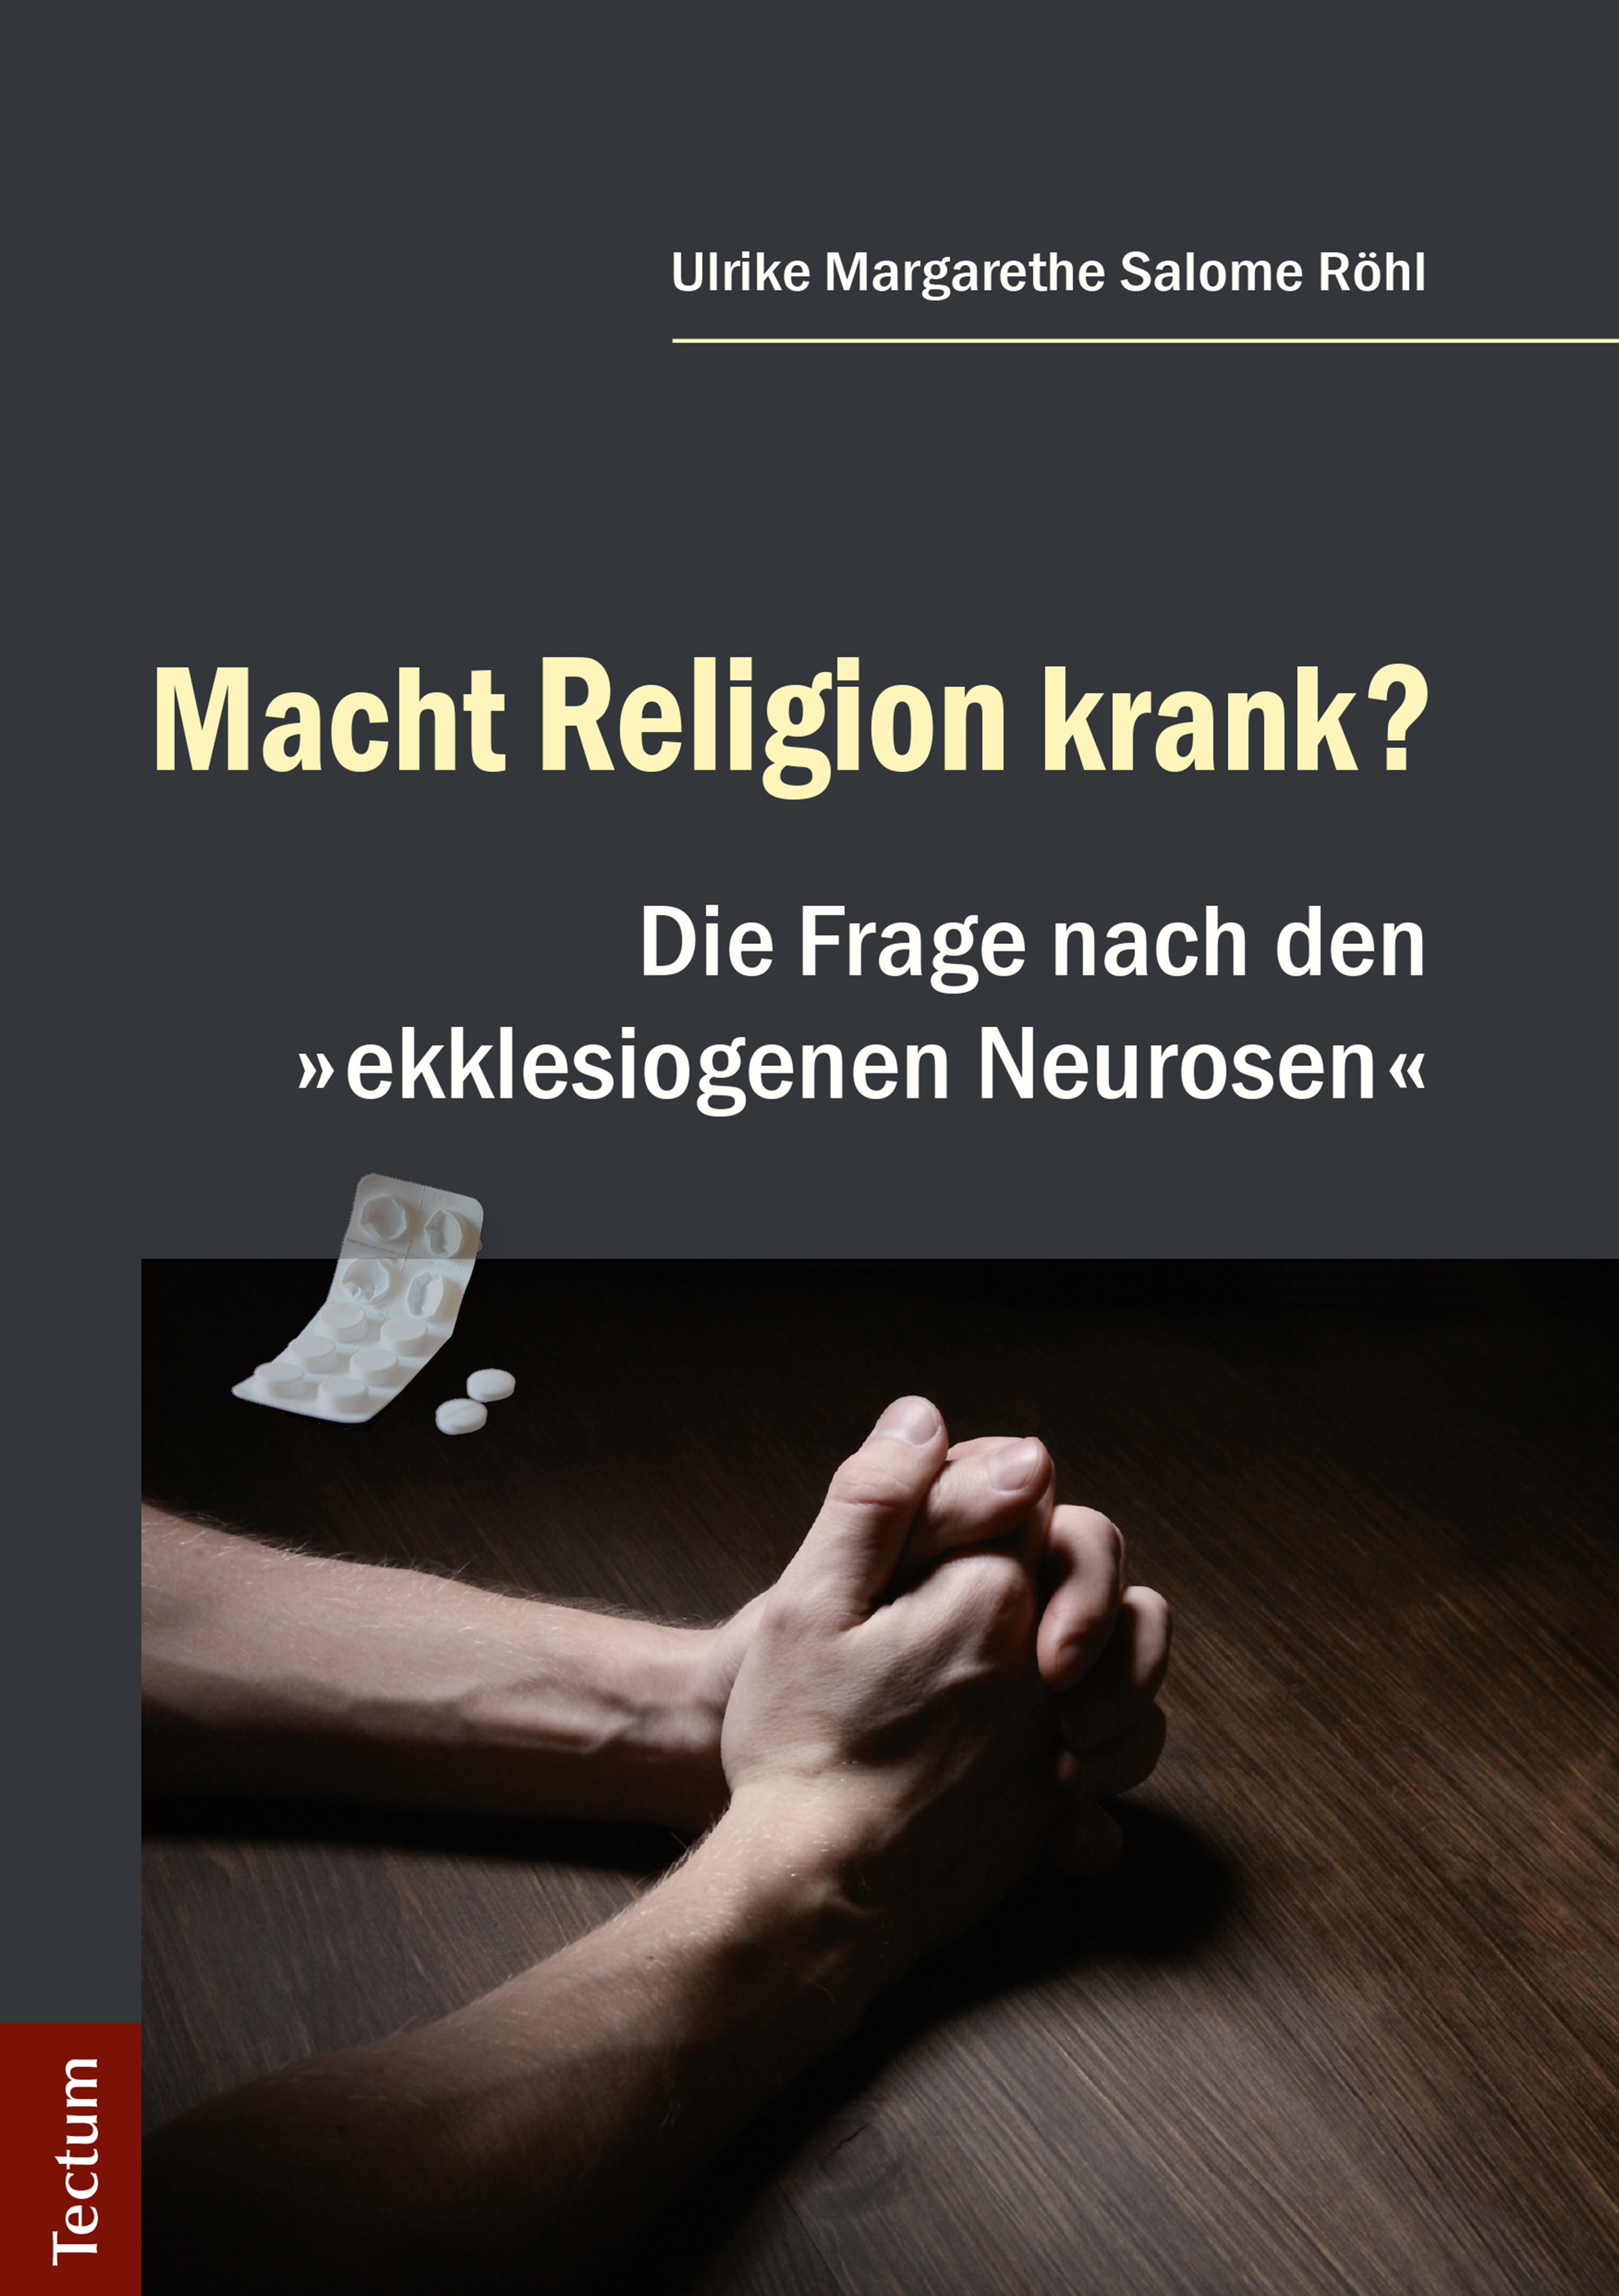 Ulrike Margarethe Salome Rohl Macht Religion krank?